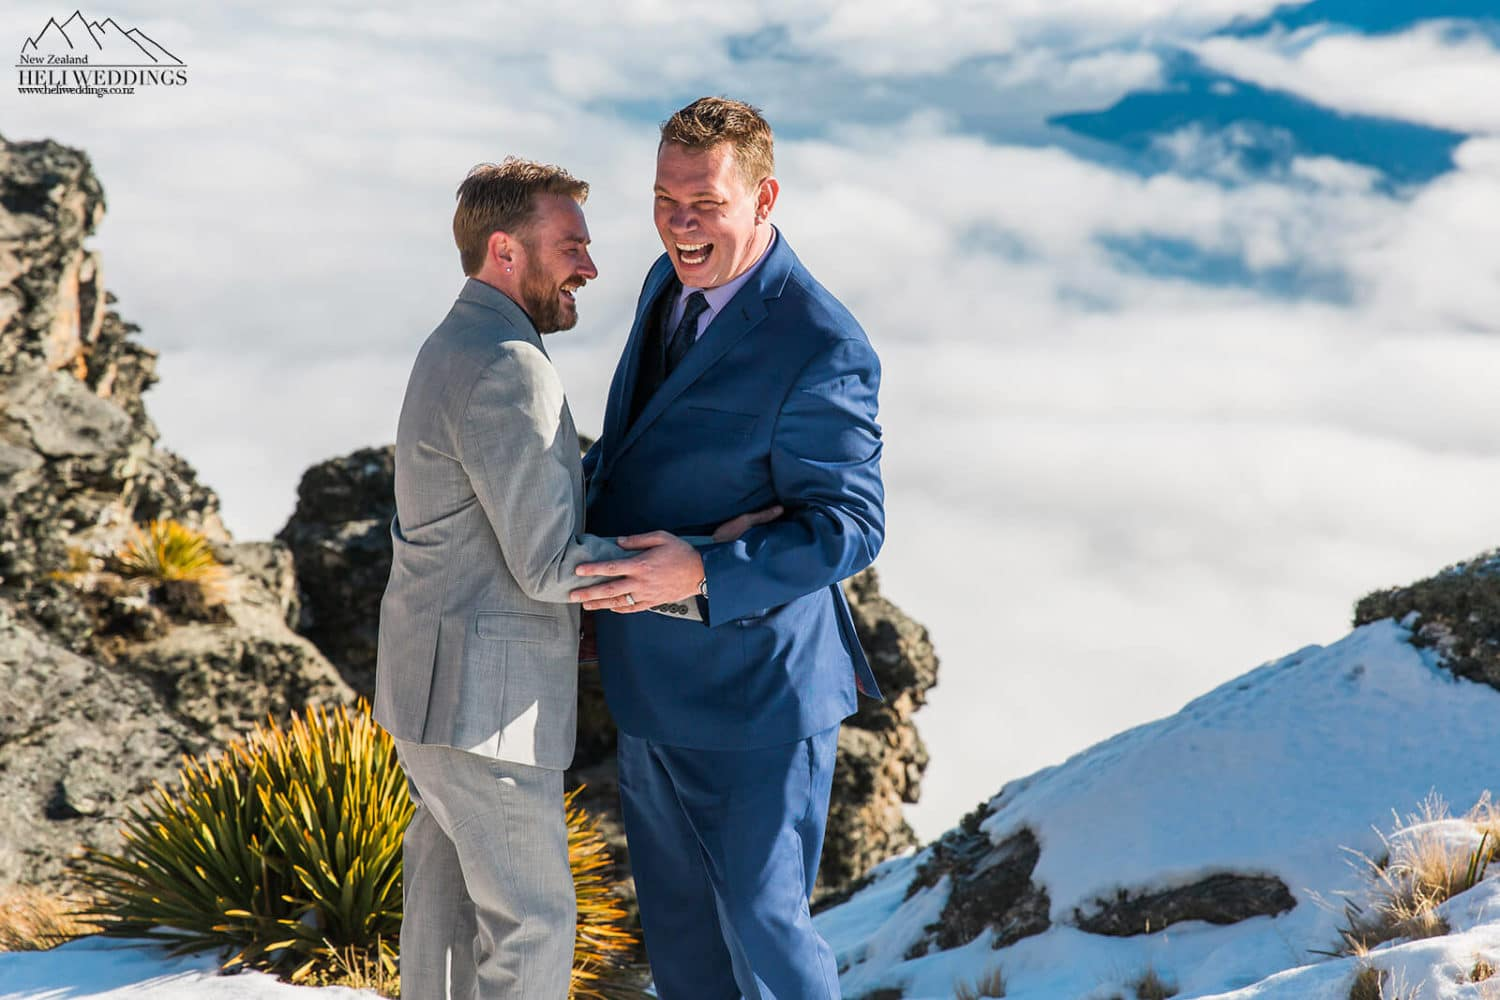 samesex Winter Wedding,Queenstown same sex heli wedding , samesex destination wedding